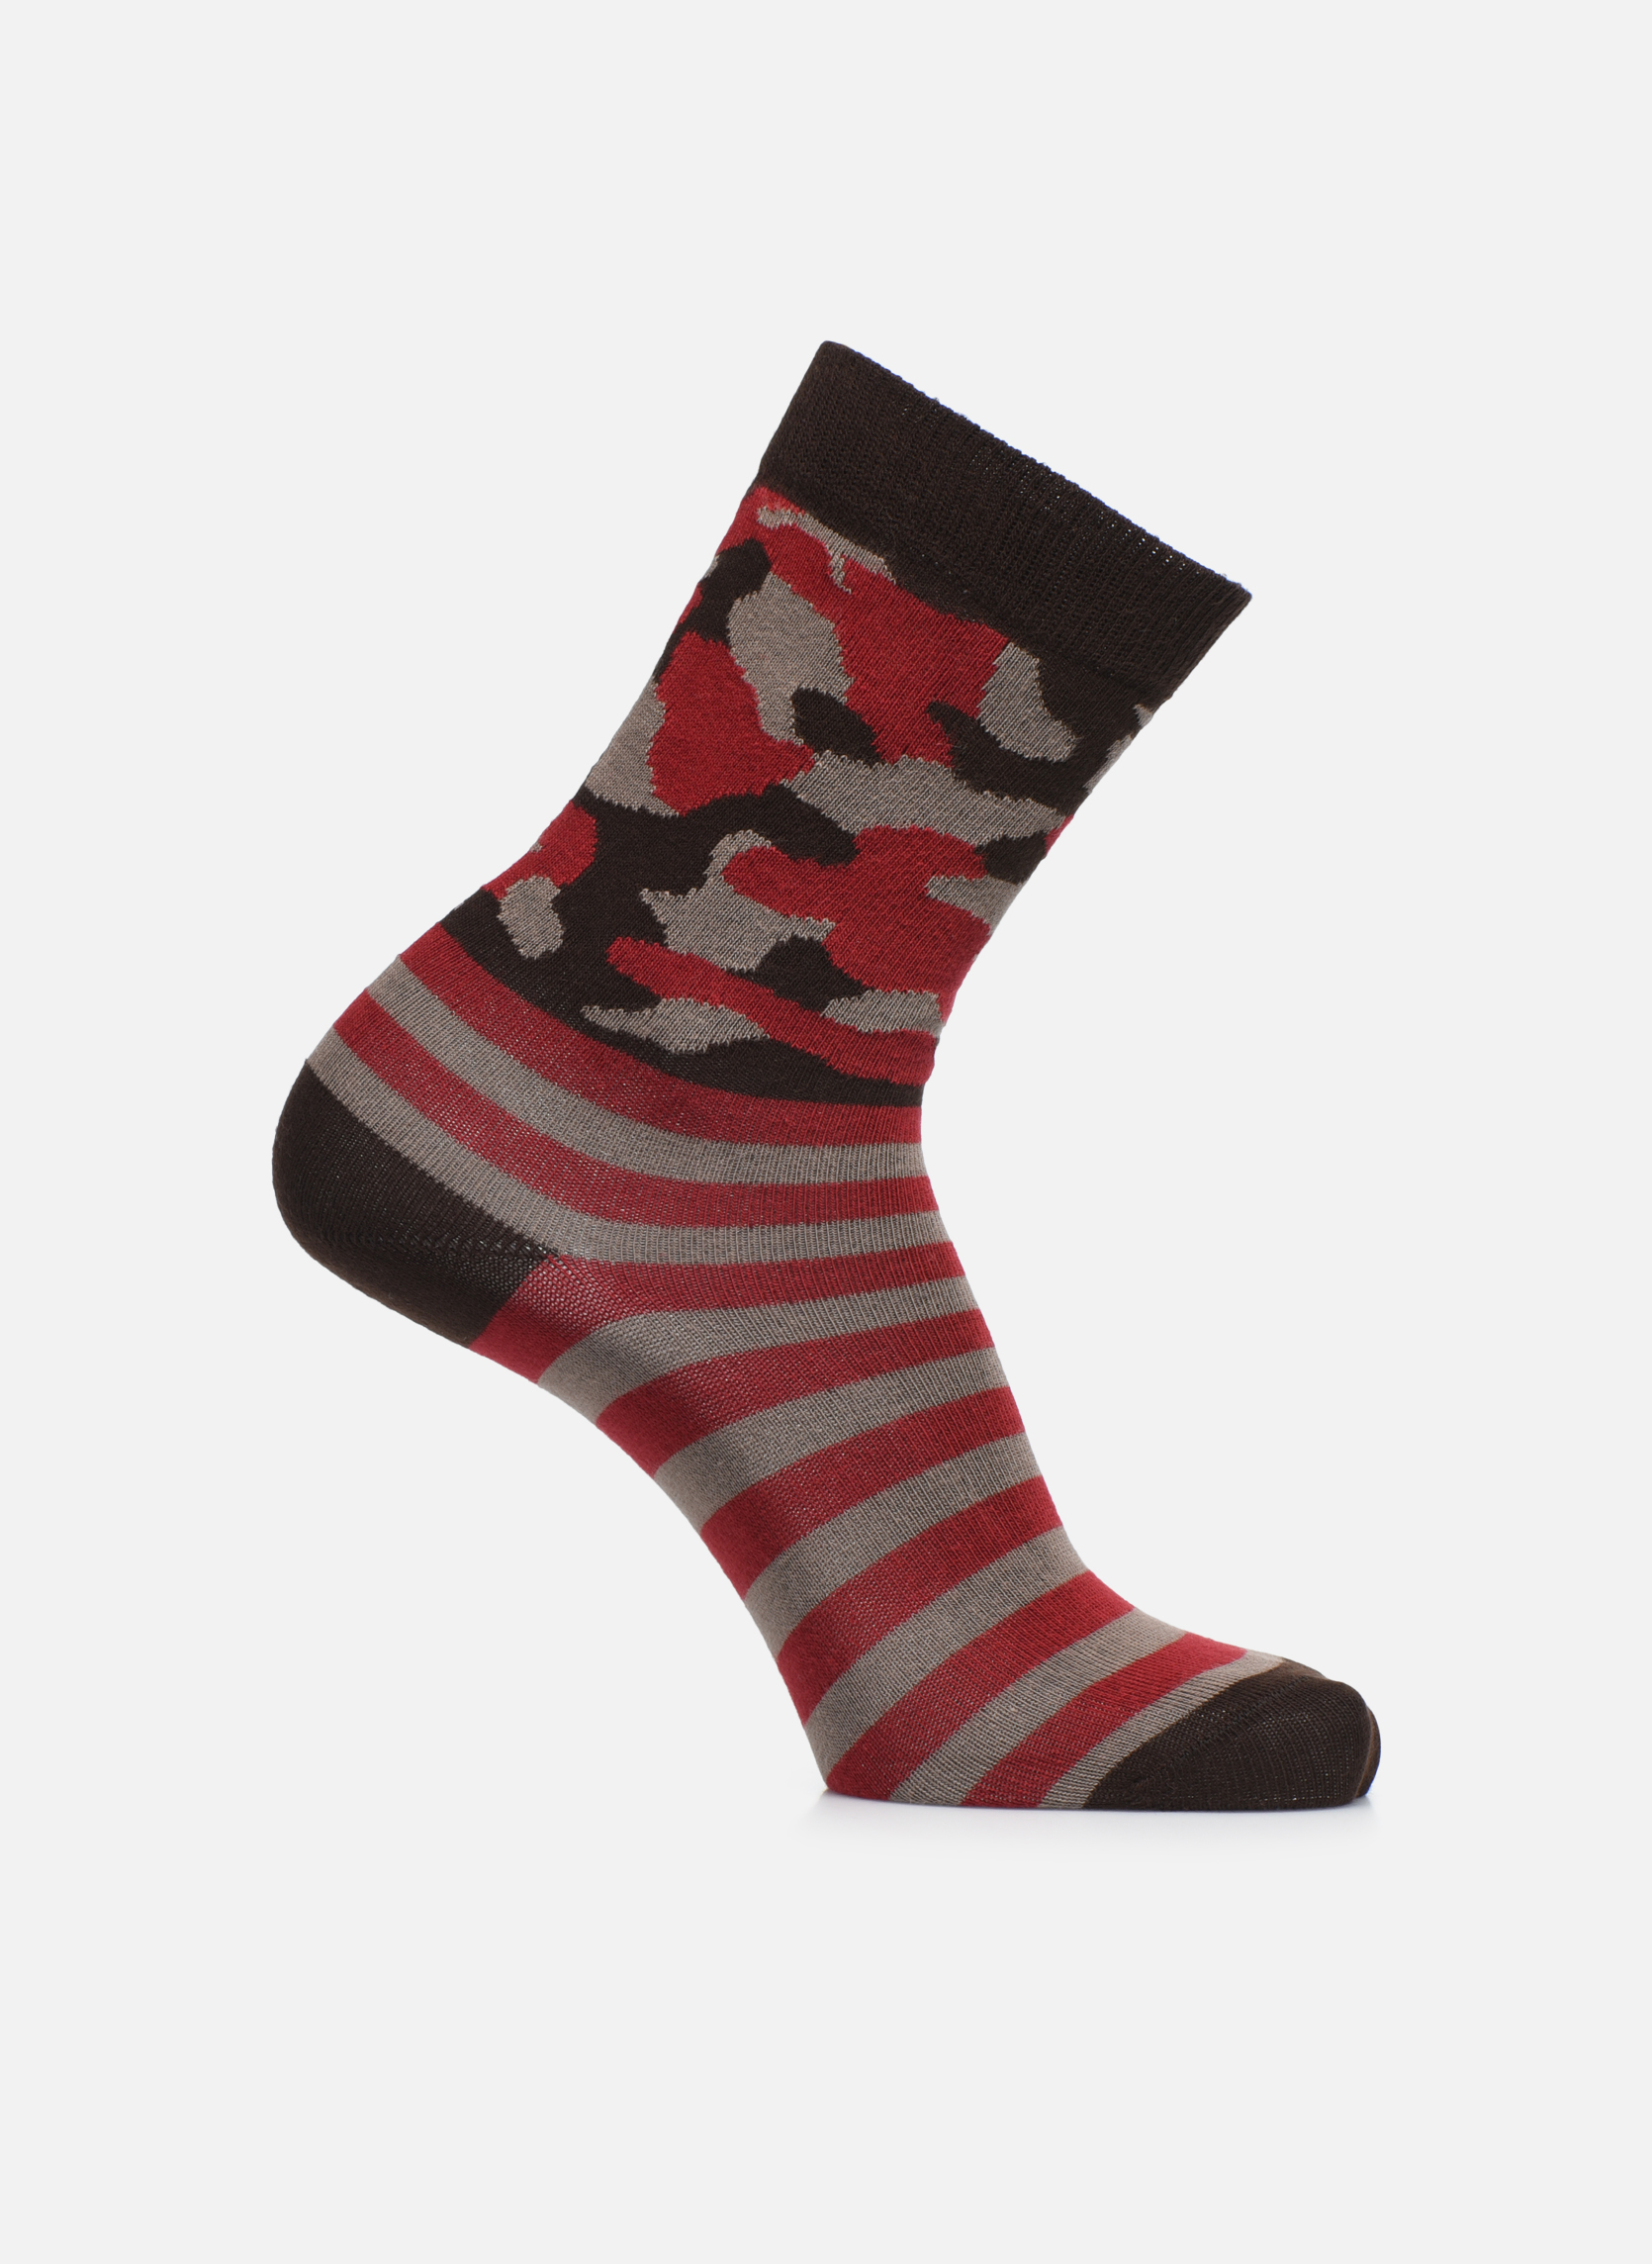 Chaussettes ARMY 022 - marron / rouge